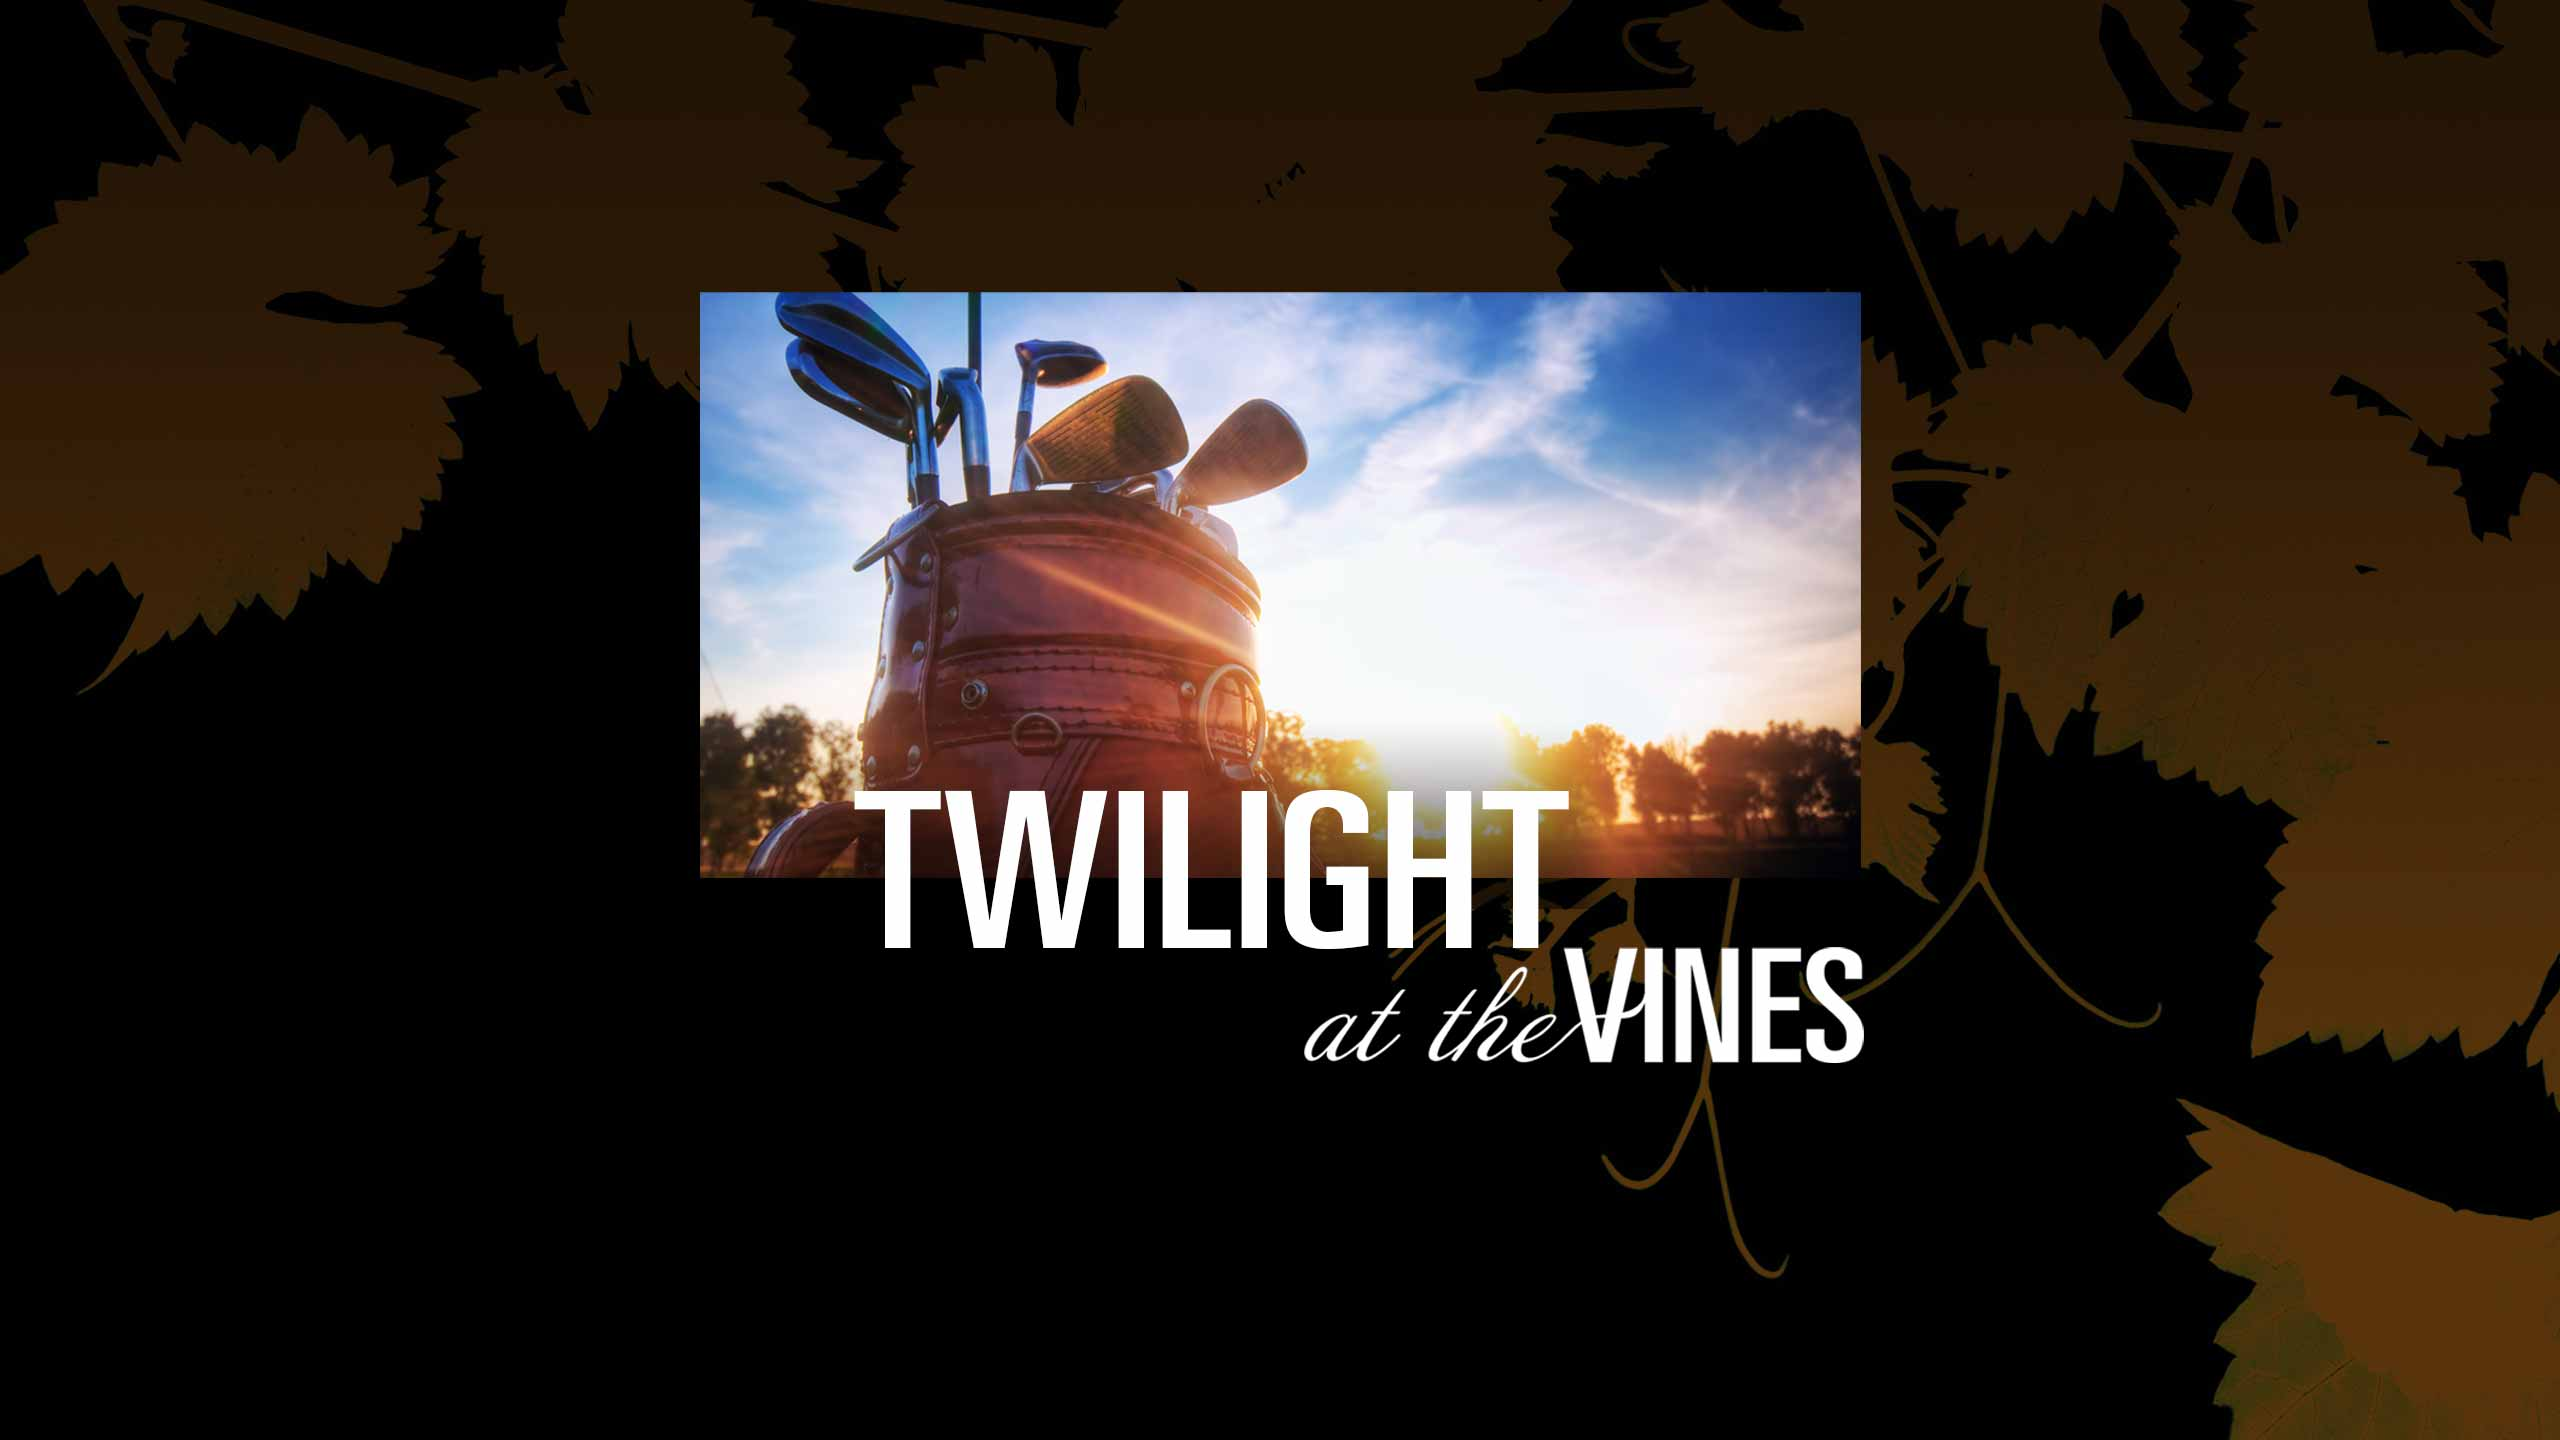 vines_twilight-3